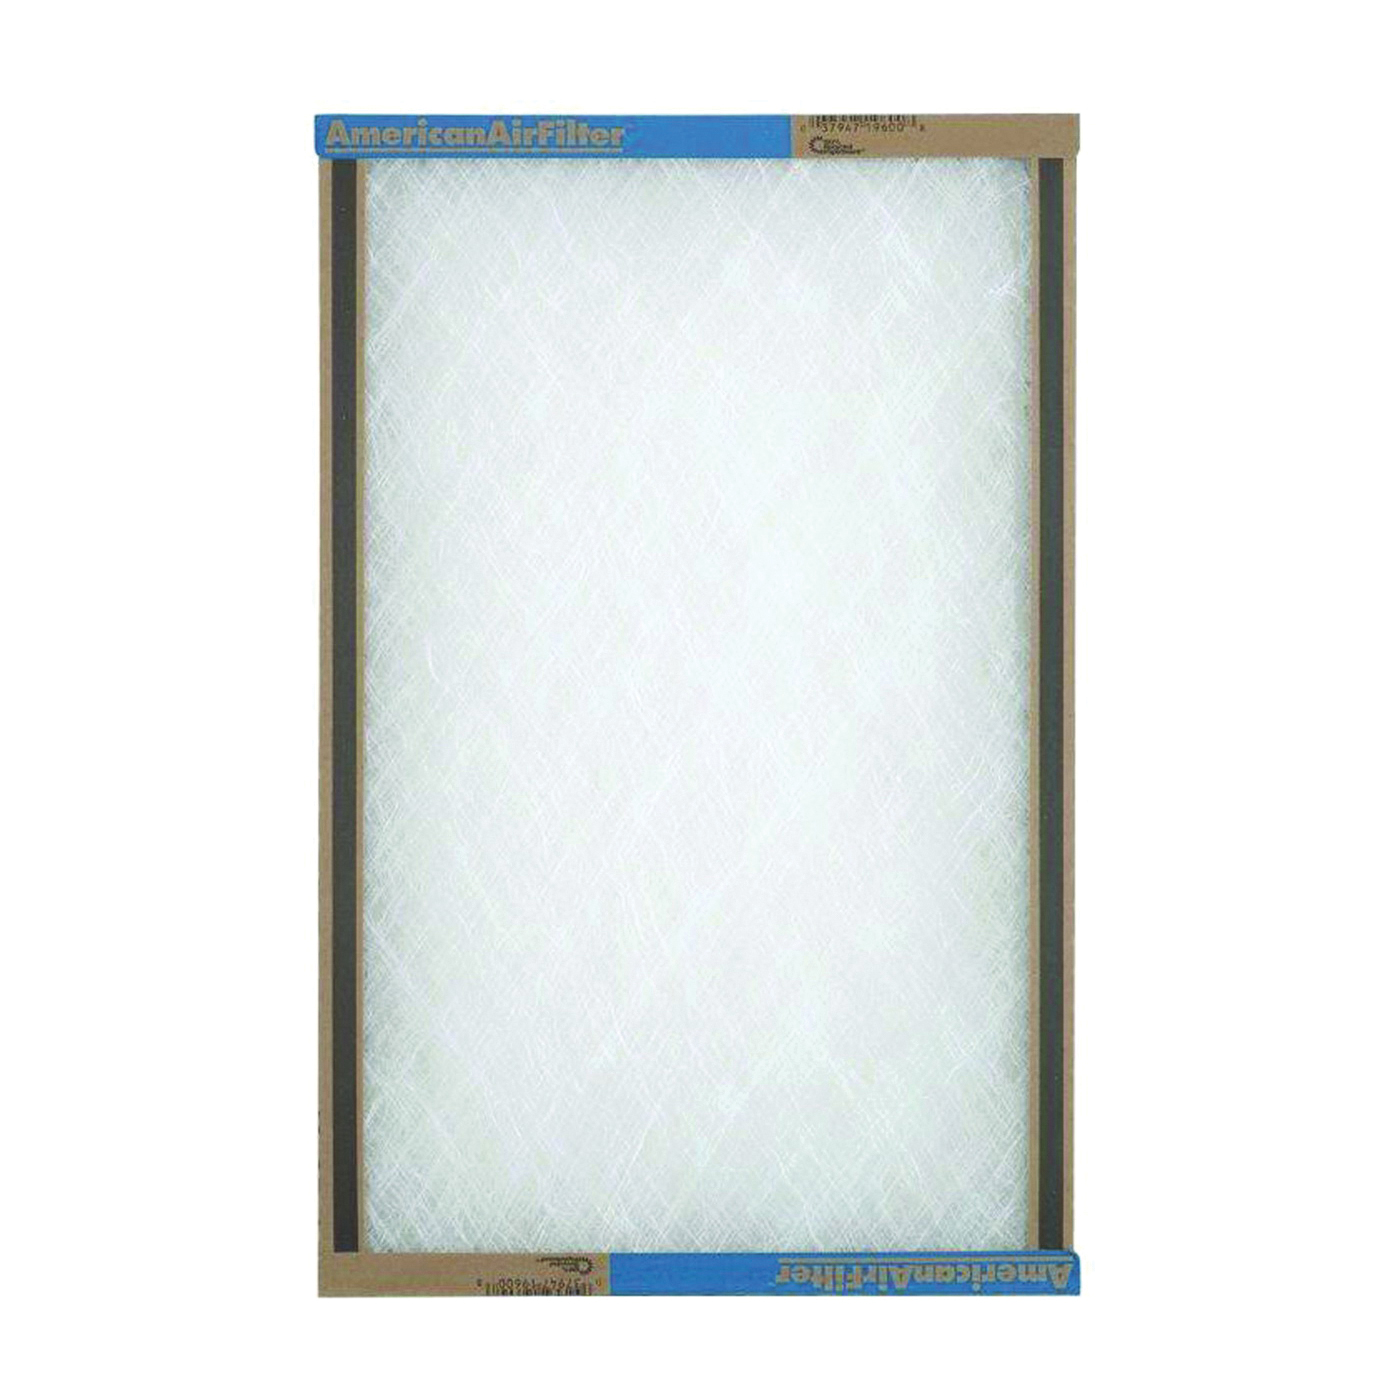 Picture of AAF 115251 Panel Filter, 25 in L, 15 in W, Chipboard Frame